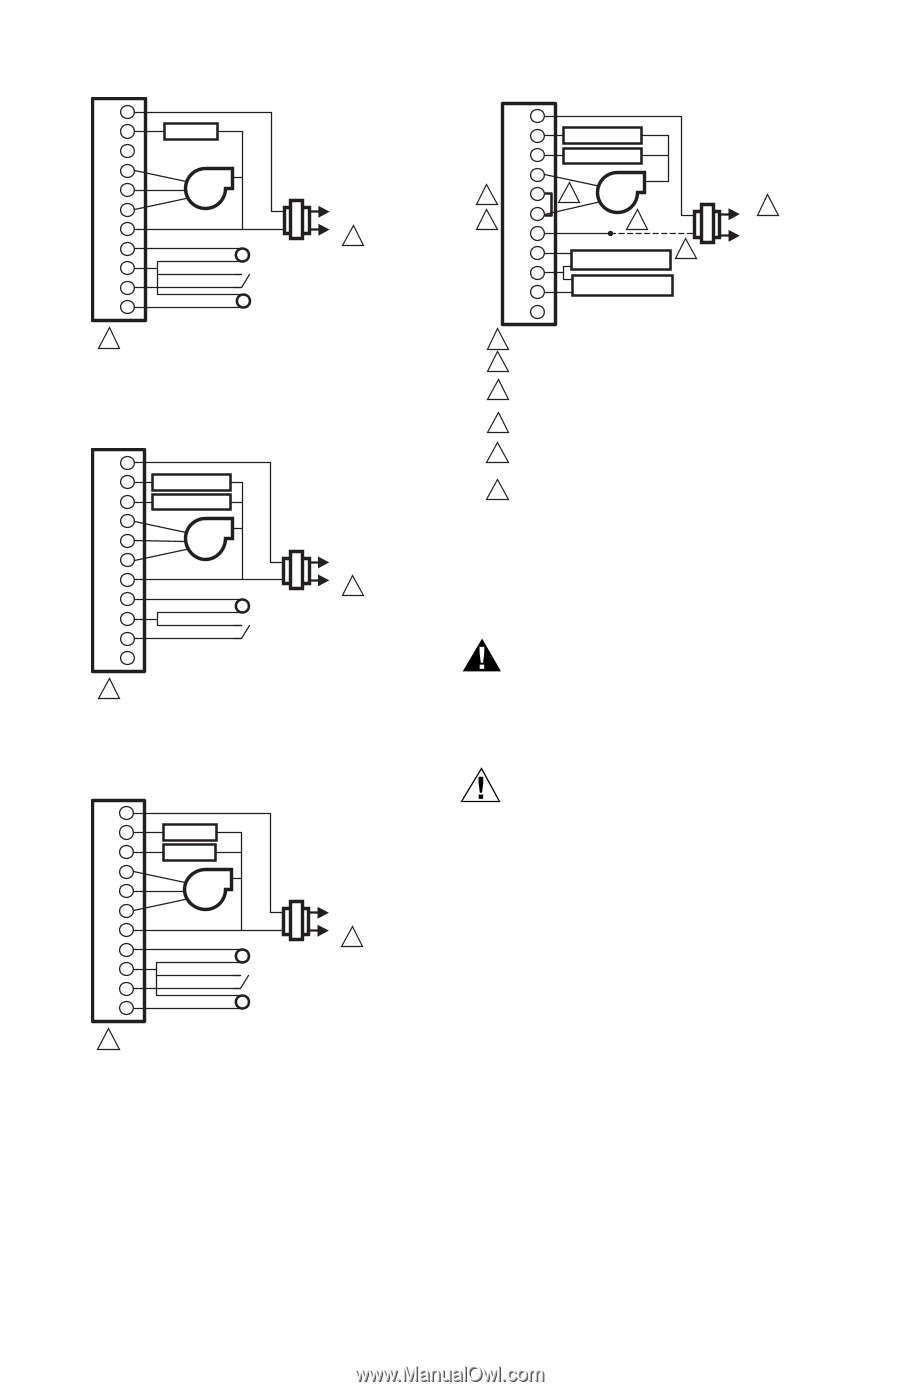 fan coil thermostat wiring diagram